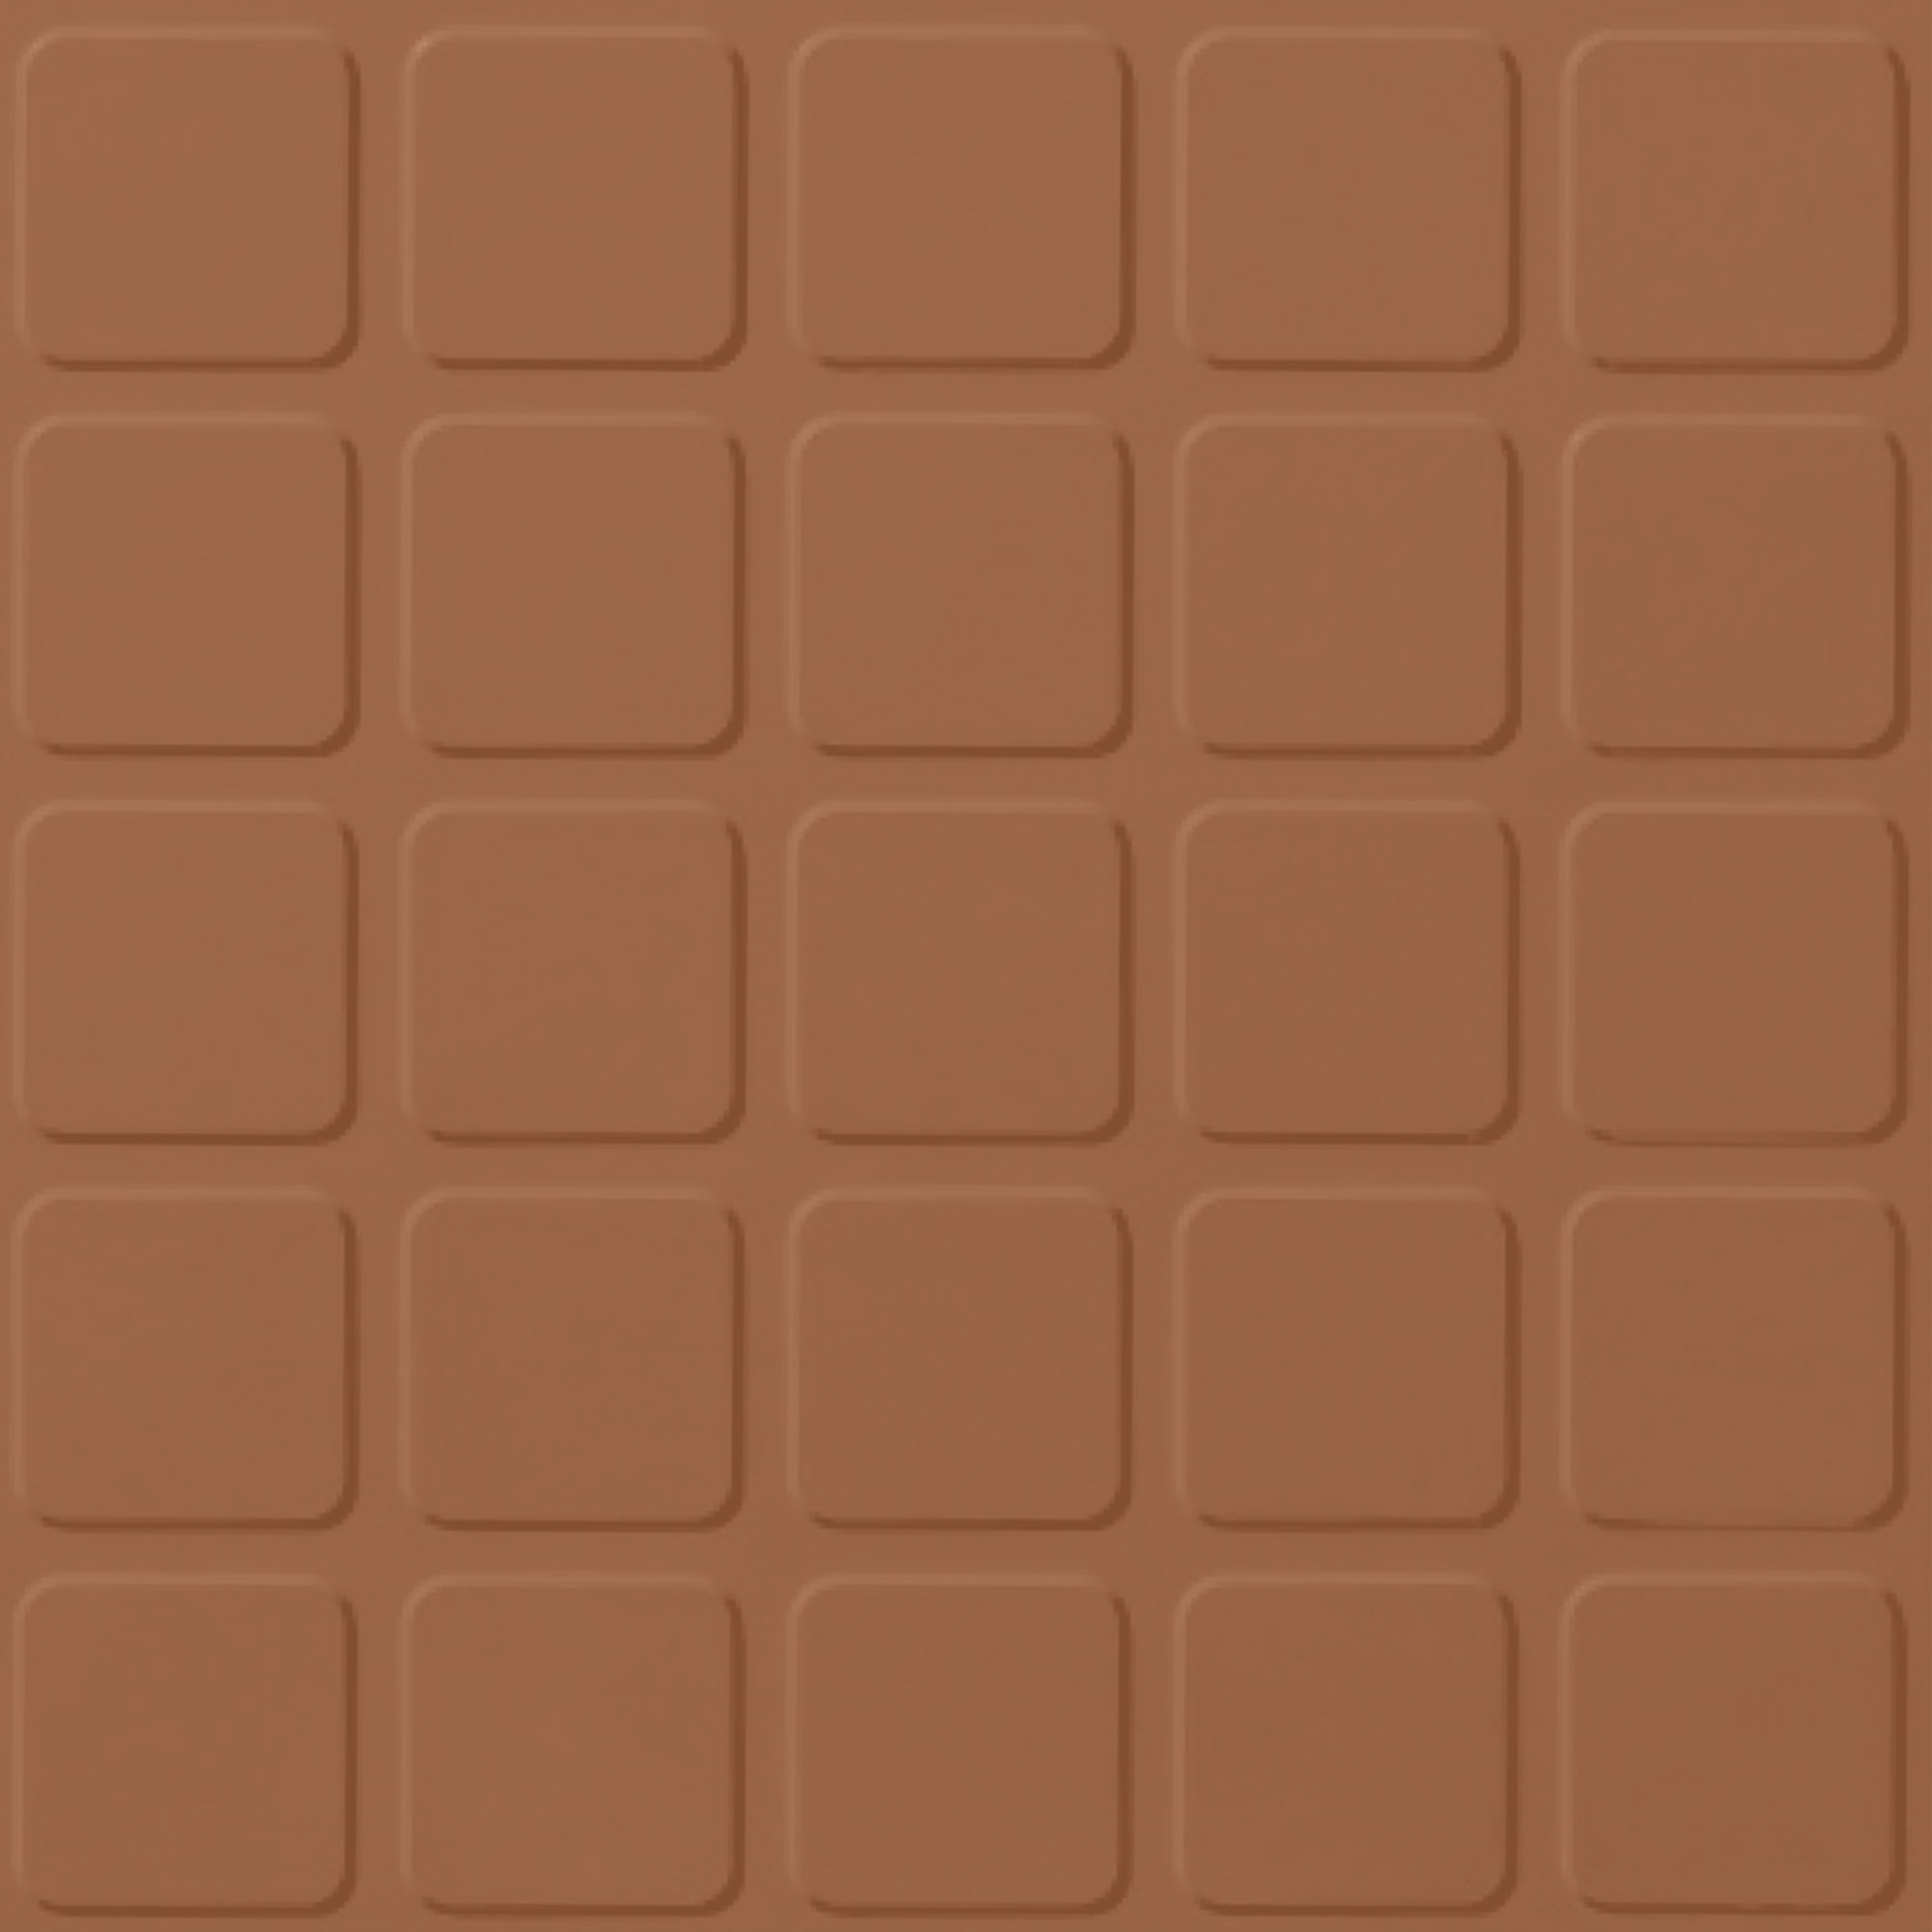 Roppe Rubber Design Treads - Raised Square Design Terracotta 617